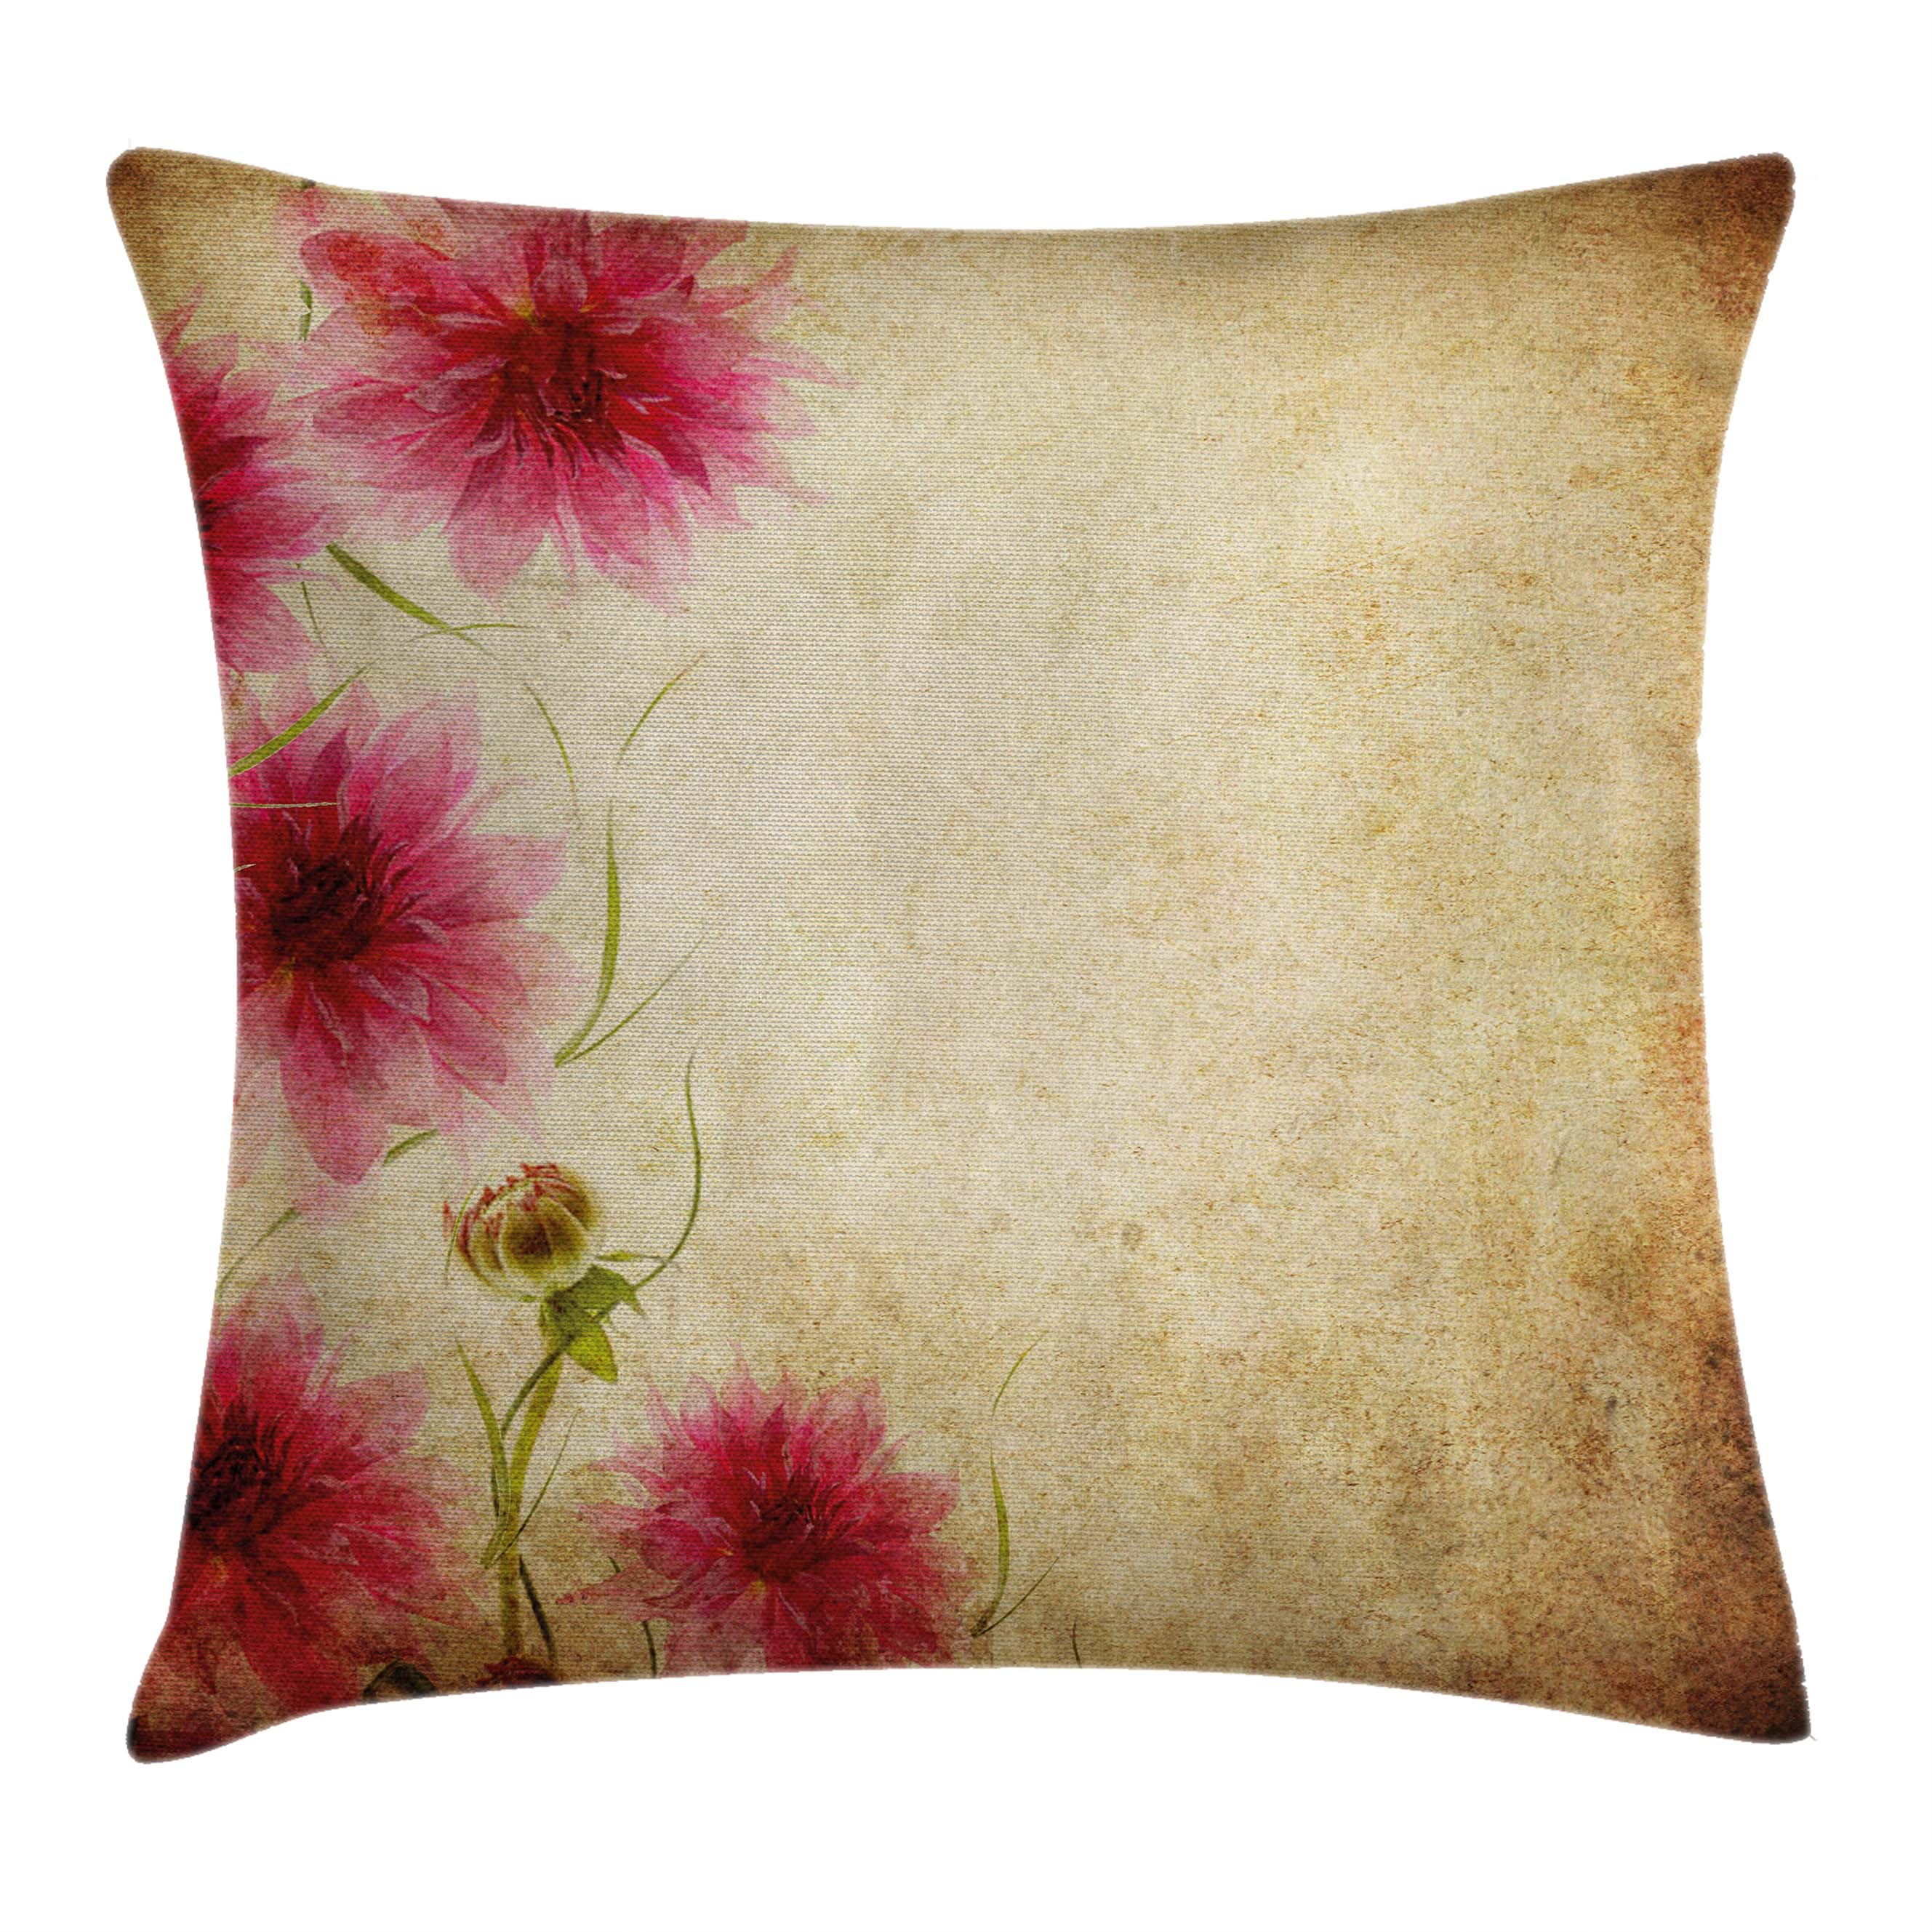 Floral Throw Pillow Cushion Cover Retro Flowers On Old Grunge Paper